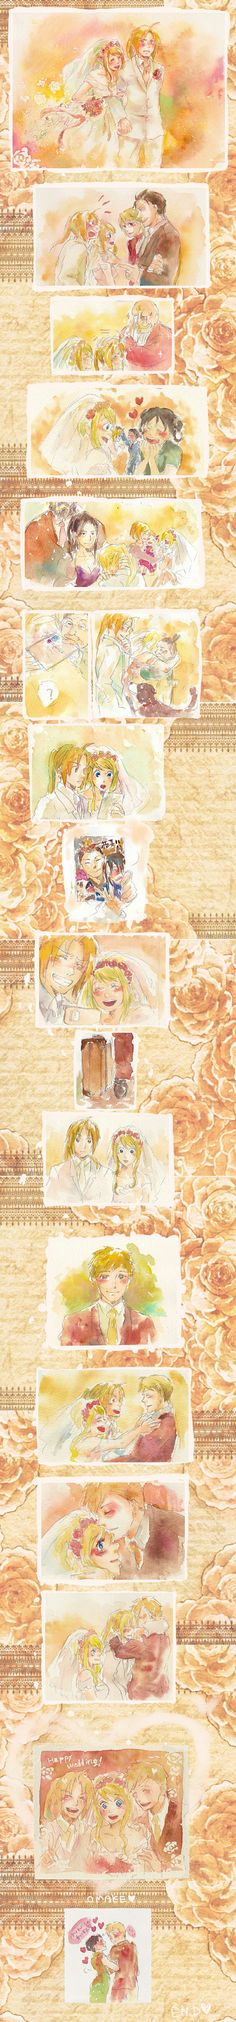 Fullmetal Wedding (Fullmetal Alchemist: Brotherhood)